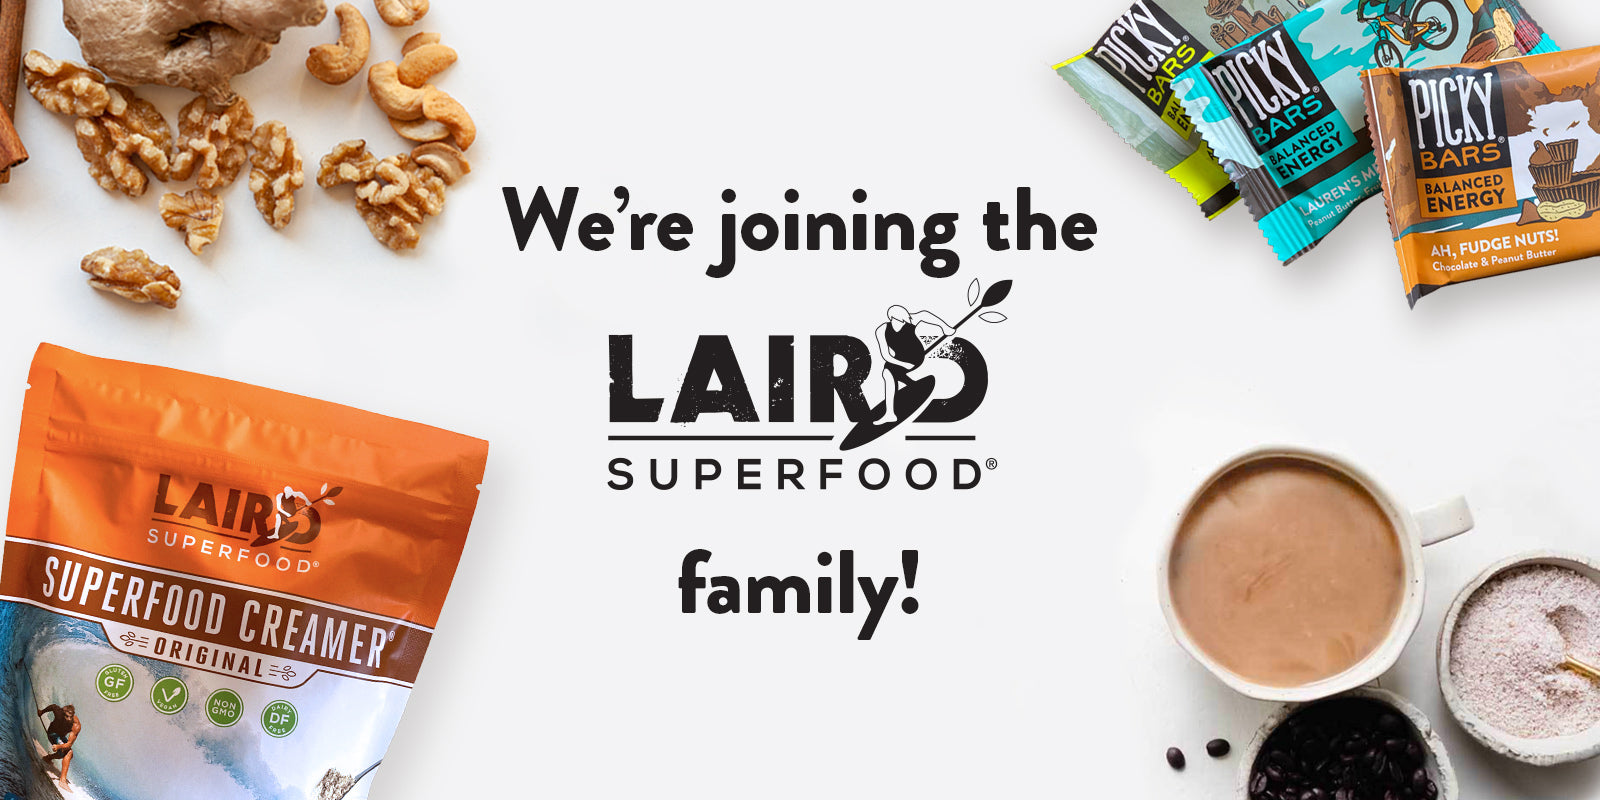 CEO Jesse on Picky's Joining with Laird Superfood